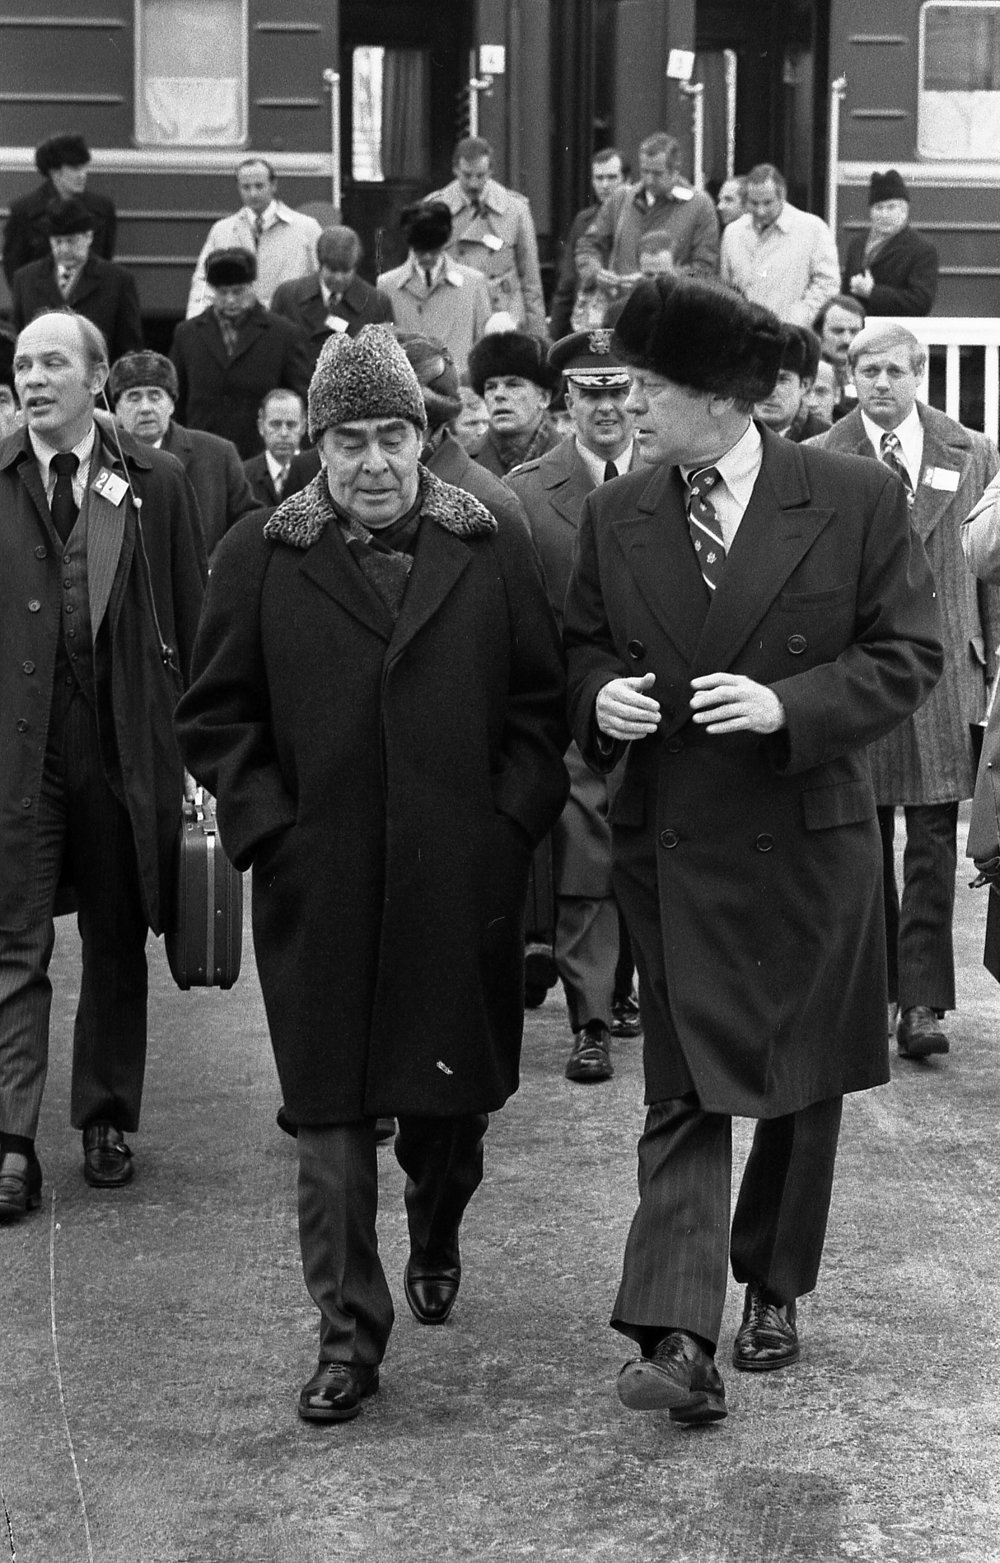 Brezhnev greets Gerald Ford upon his arrival at Vozdvizhenka for the Vladivostok Summit on 23 November 1974.